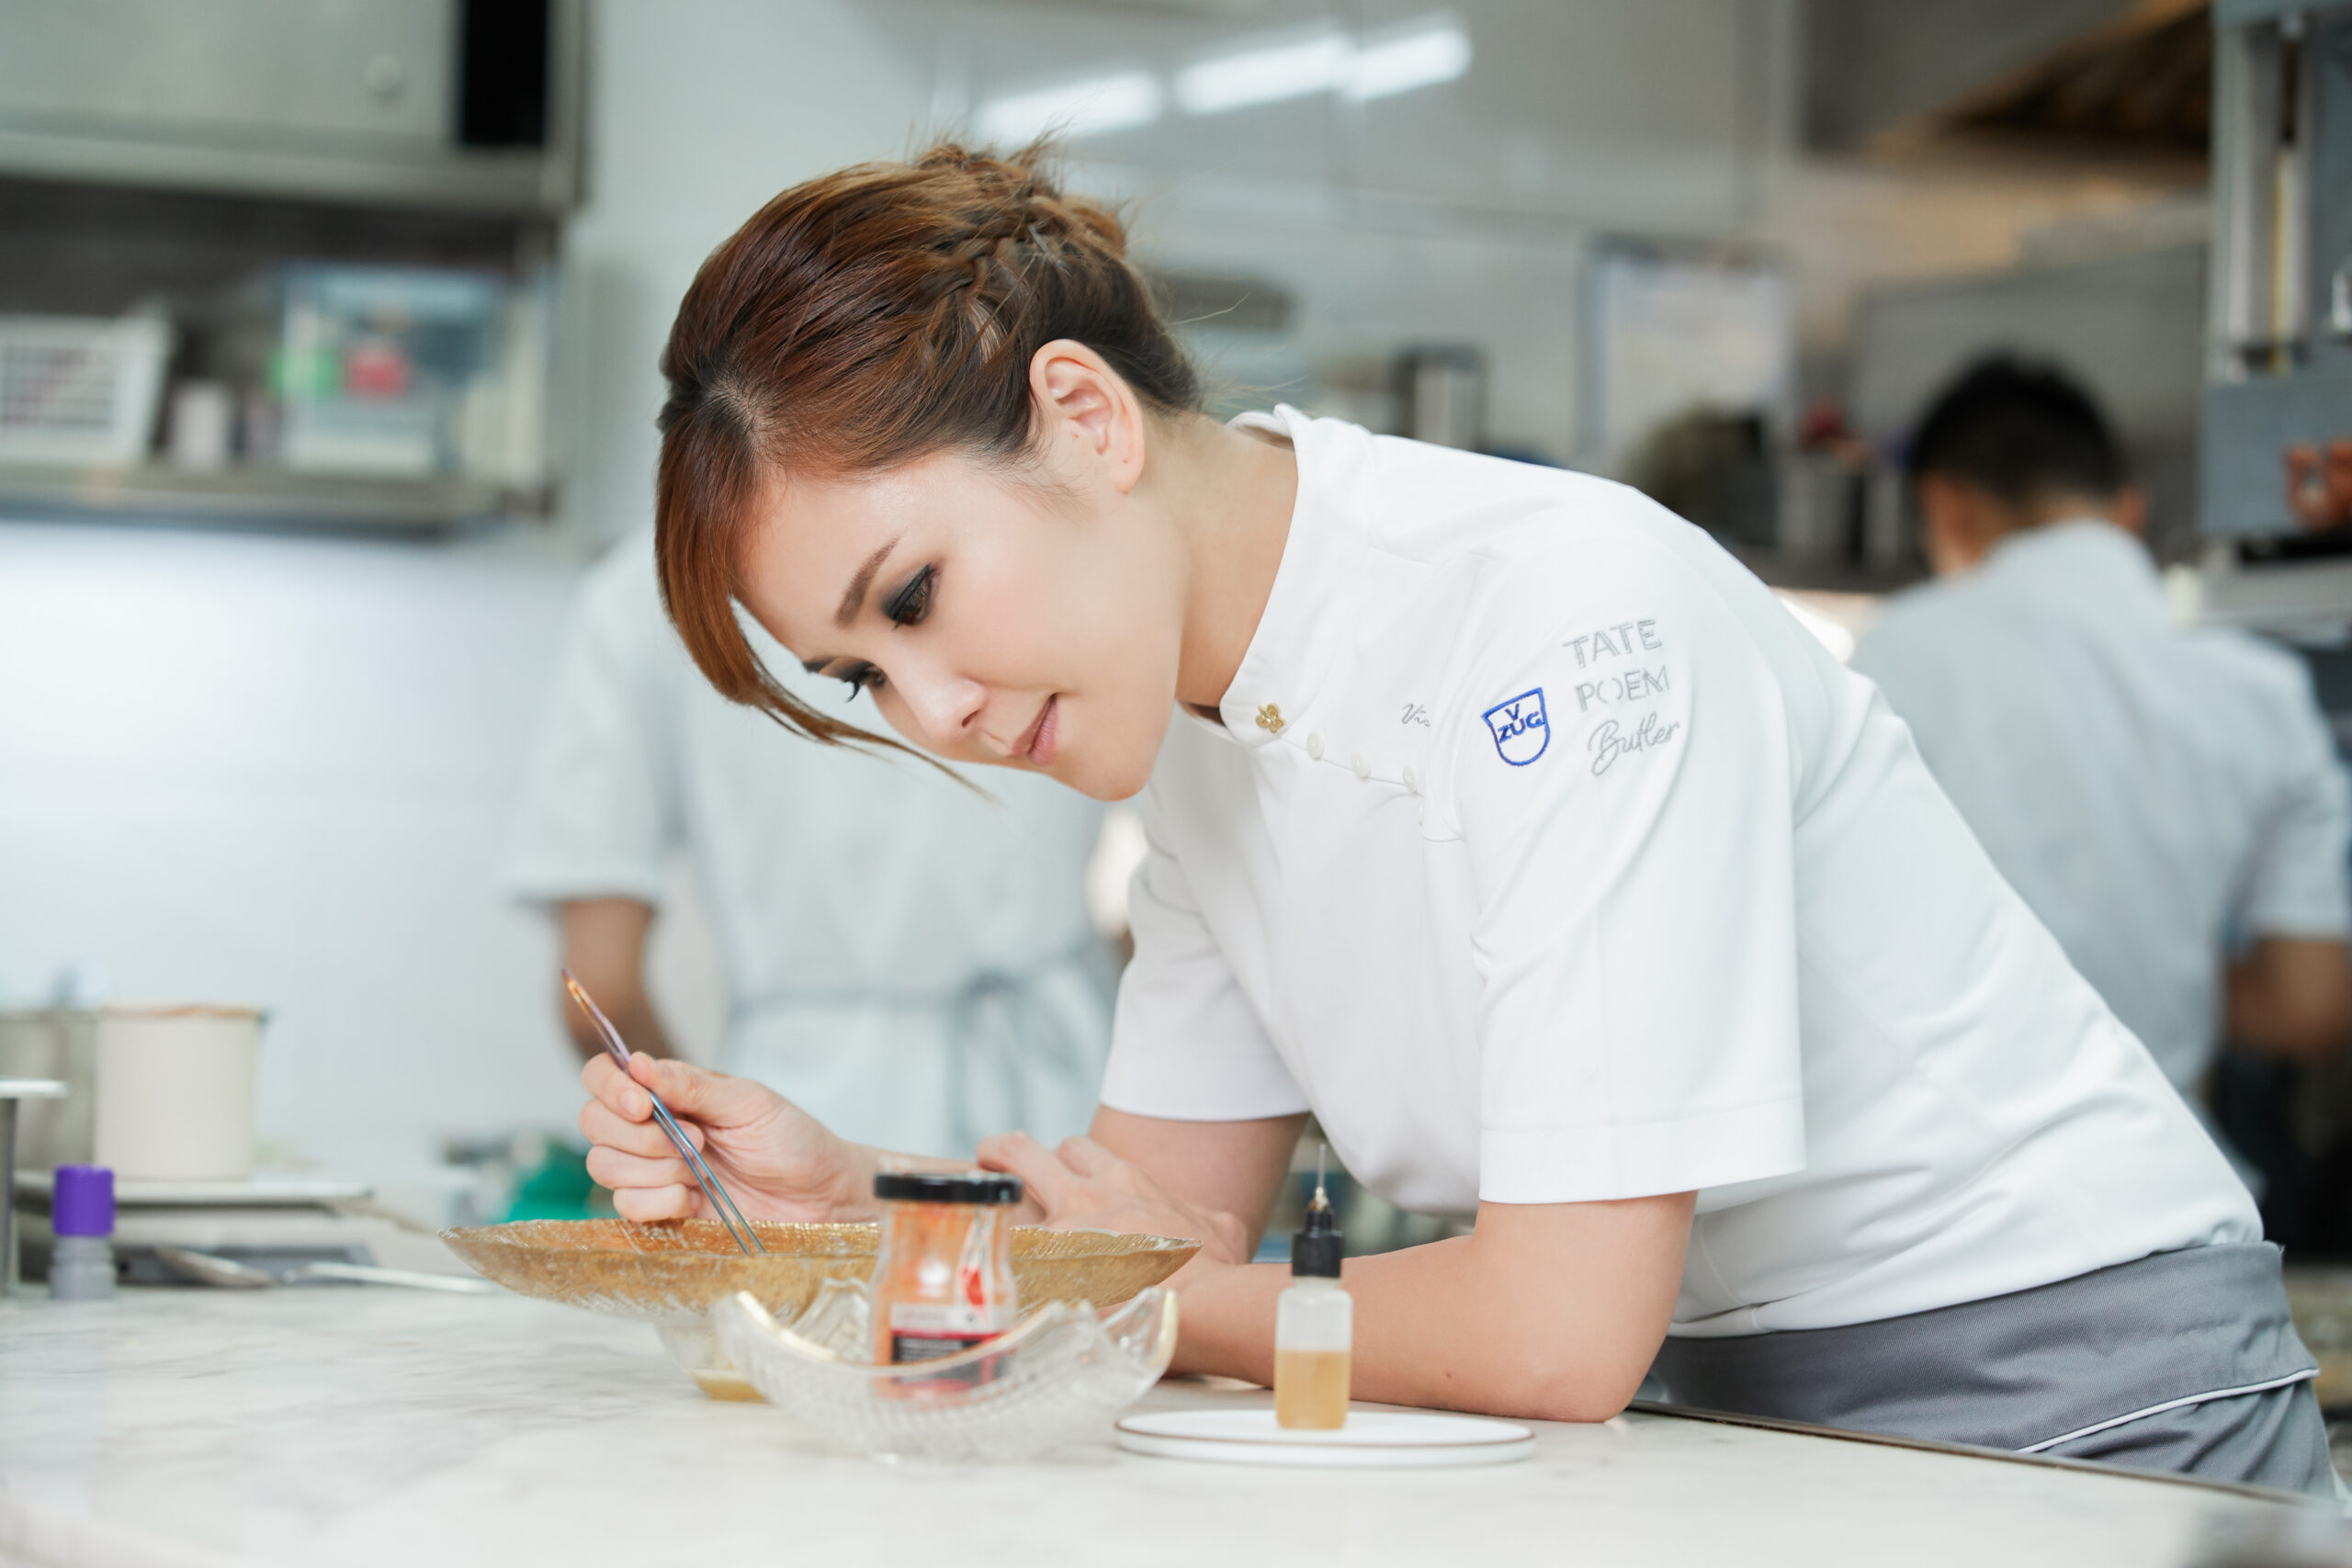 The Loop HK 30 Best Eats 2020 Best Chef: Vicky Lau, Tate Dining Room